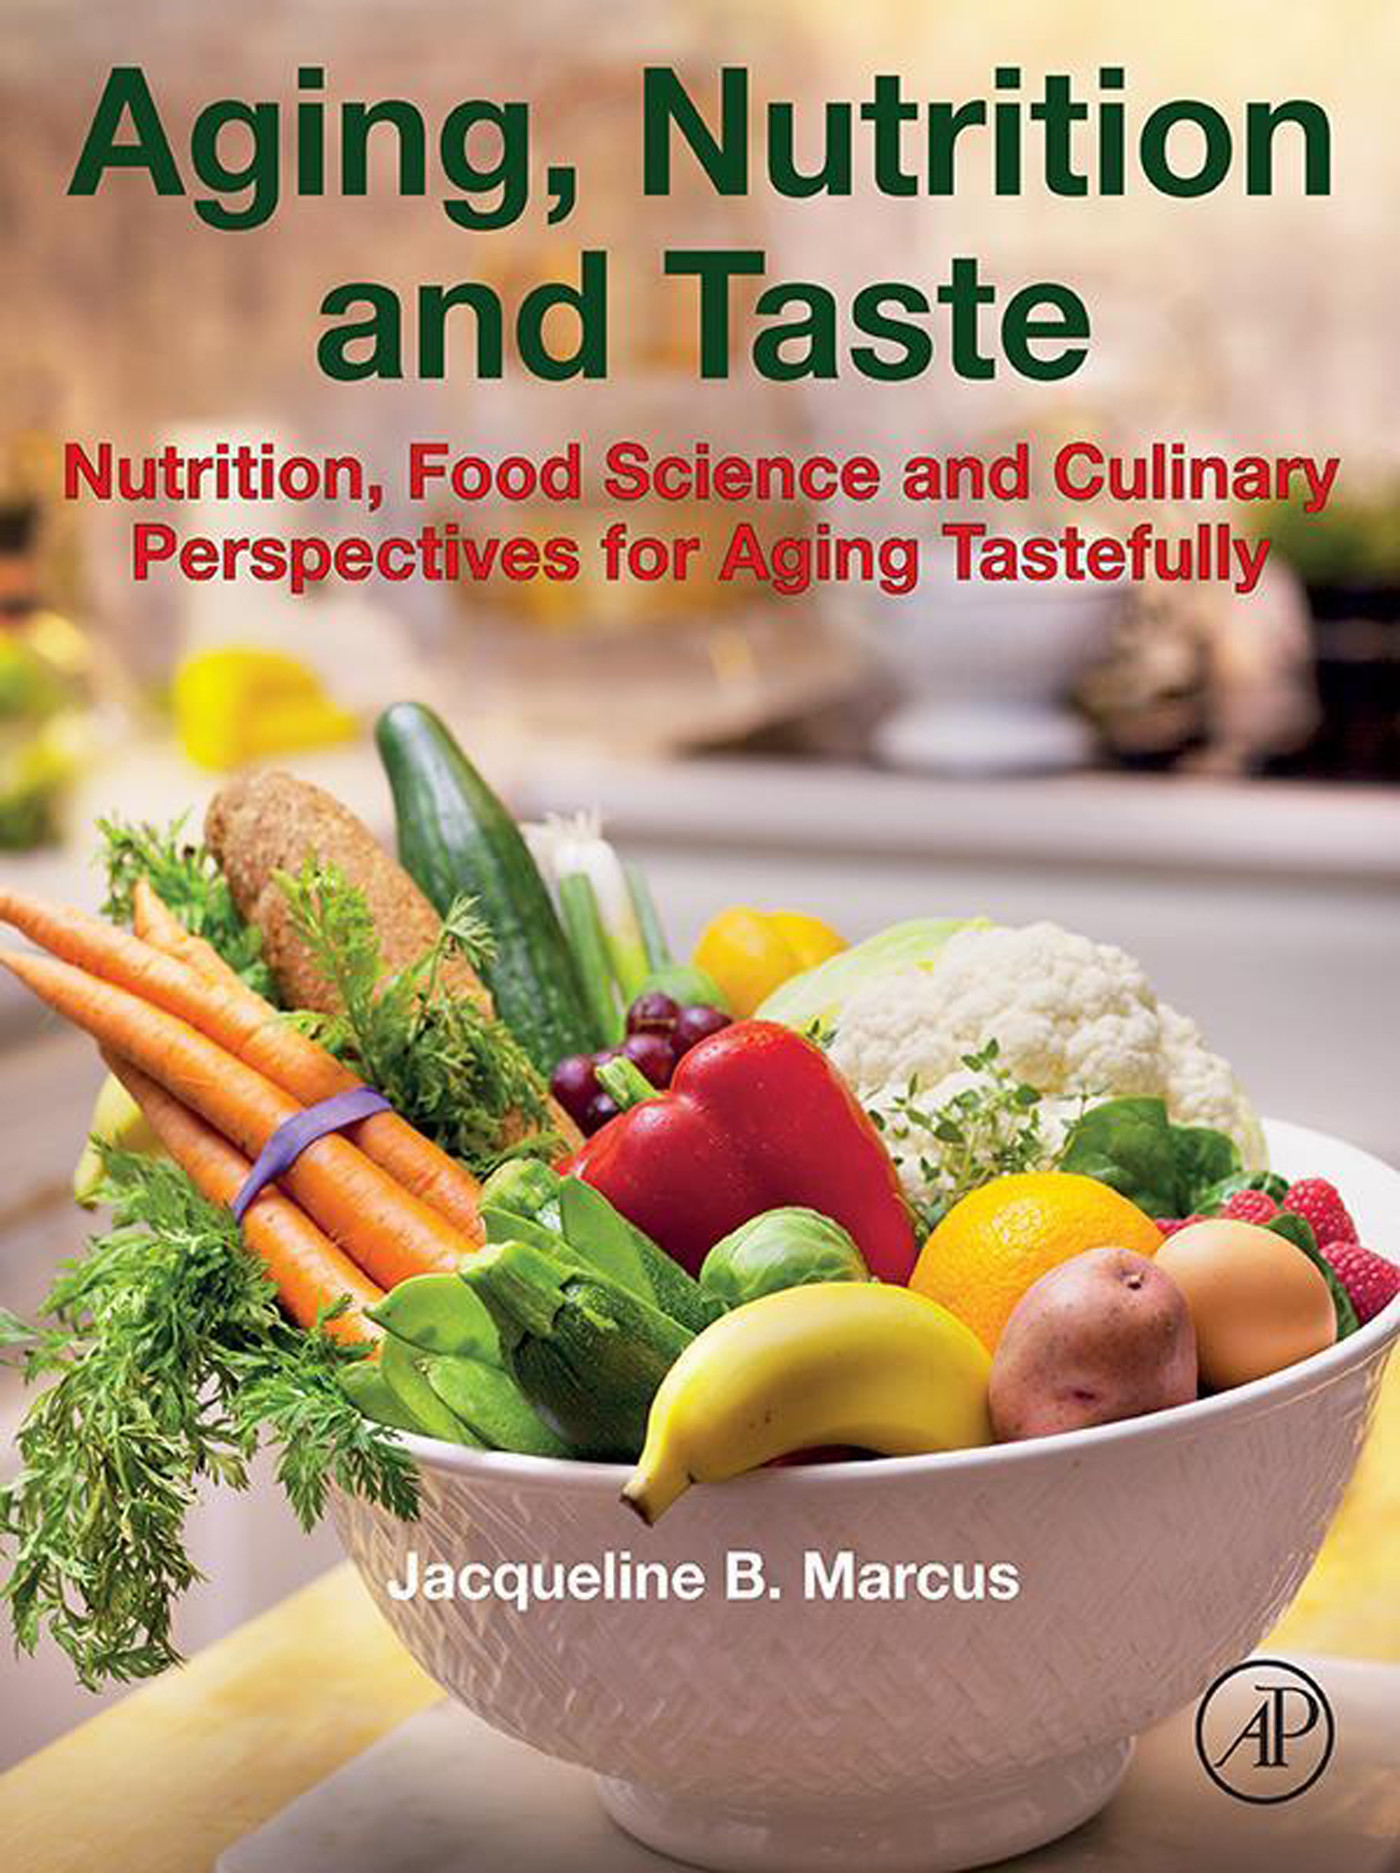 Aging, Nutrition and Taste